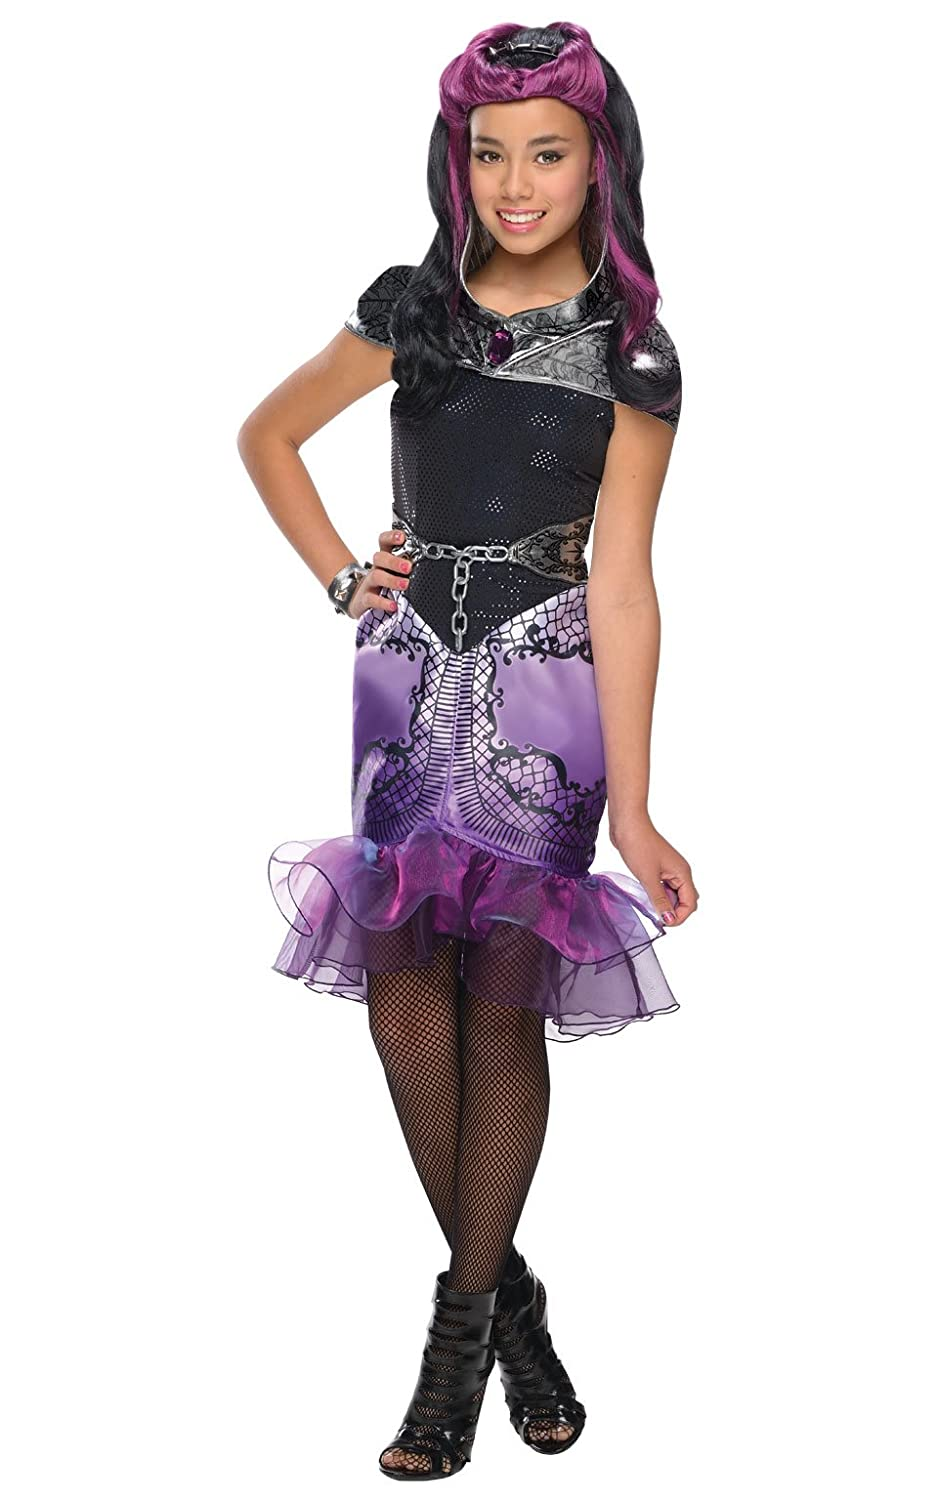 Amazon.com Rubieu0027s Ever After High Child Raven Queen Costume Child Medium Toys u0026 Games  sc 1 st  Amazon.com & Amazon.com: Rubieu0027s Ever After High Child Raven Queen Costume Child ...